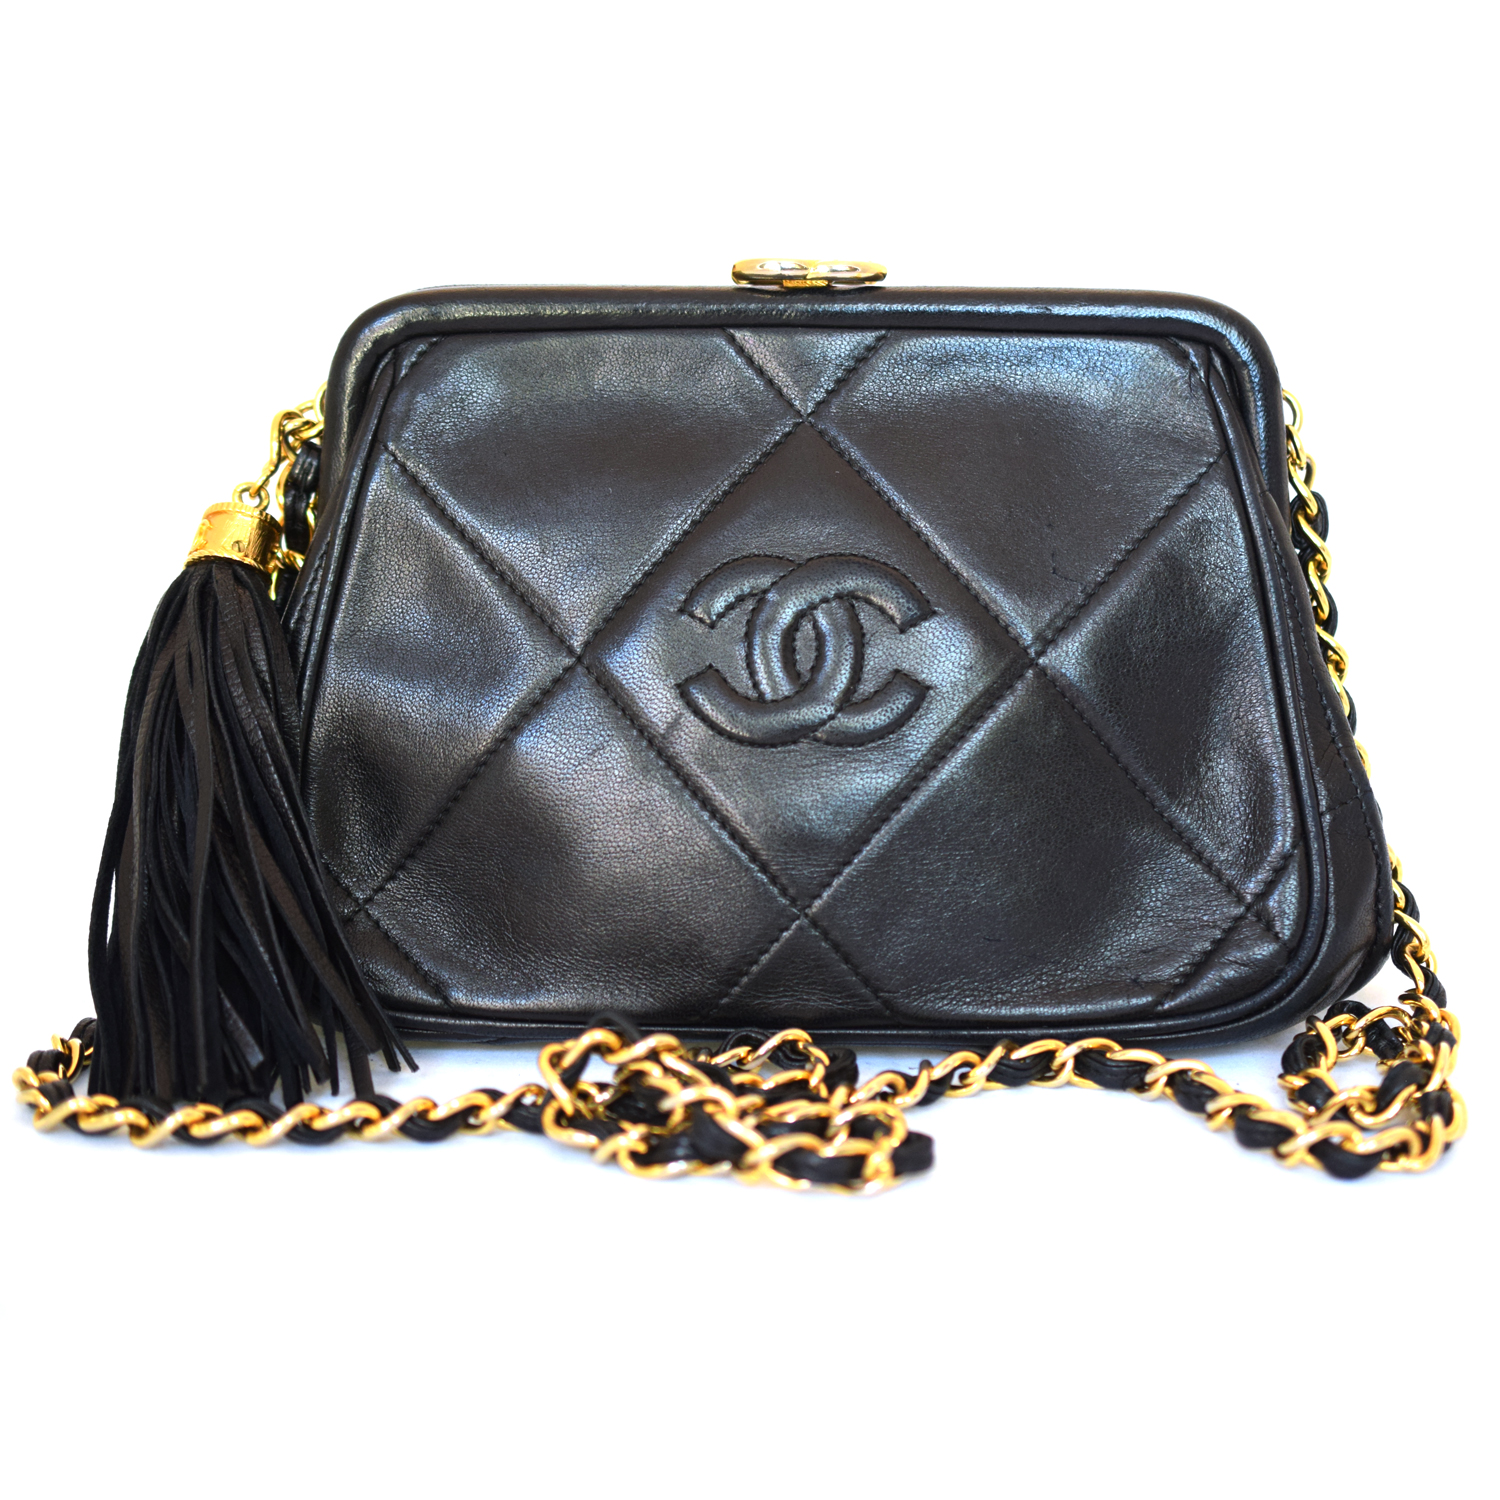 Vintage Chanel Quilted Leather Handbag With Tassel